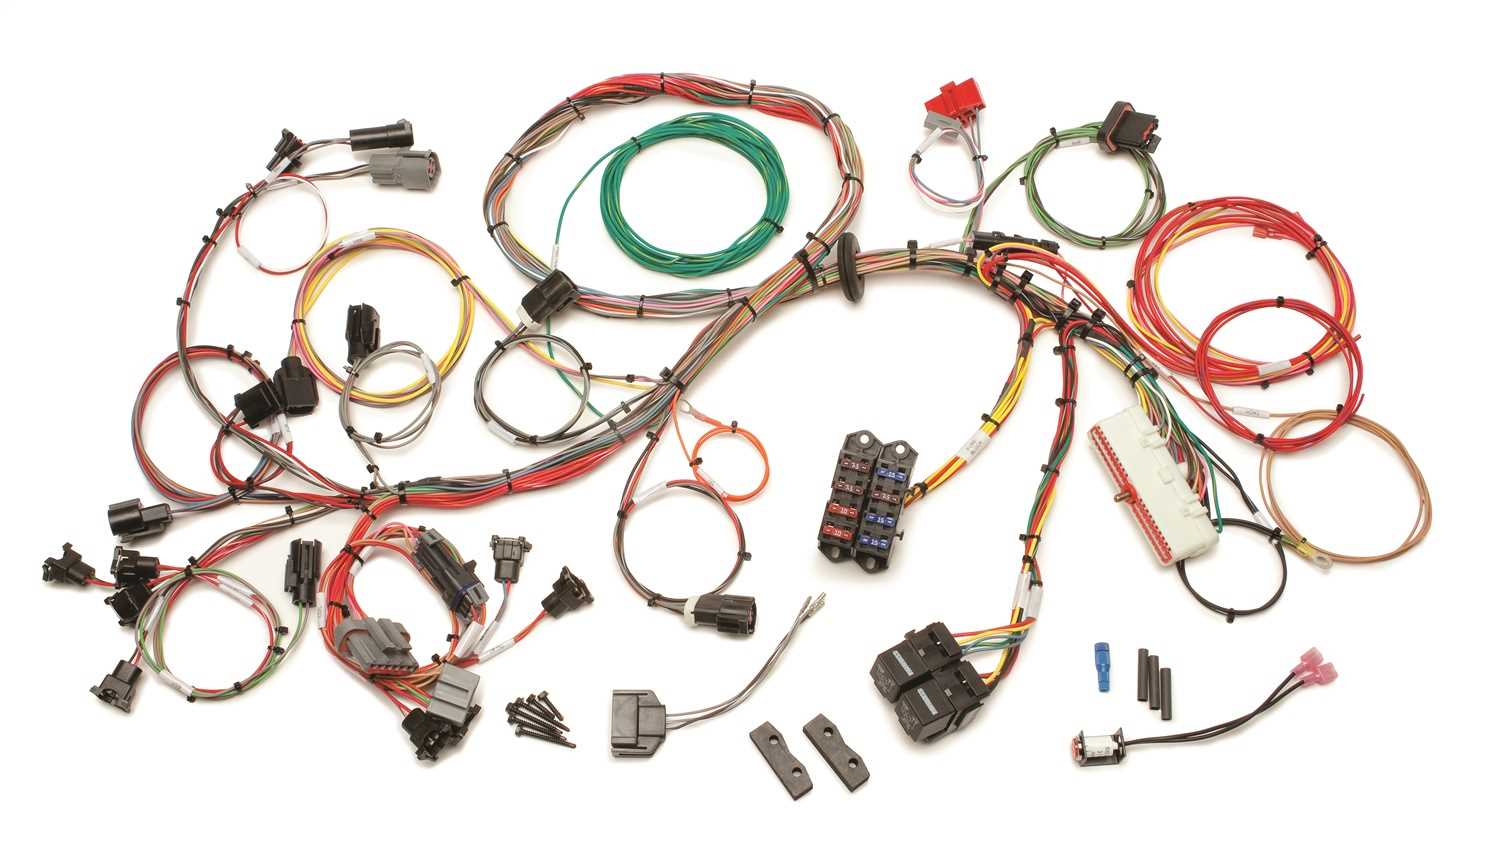 60510 Painless Wiring Fuel Injection Wiring Harness 60510 on 1972 chevy truck harness, radio harness, painless fuse box, front lead dog harness, indestructible dog harness, chevy tbi harness, rover series 3 diesel harness, 5.3 vortec swap harness, bully dog harness, 5 point harness, painless engine harness, horse driving harness, racing seat harness, horse team harness, dodge ram injector harness, duraspark harness, electrical harness, ford 5.0 fuel injection harness, fuel injector harness, car harness,